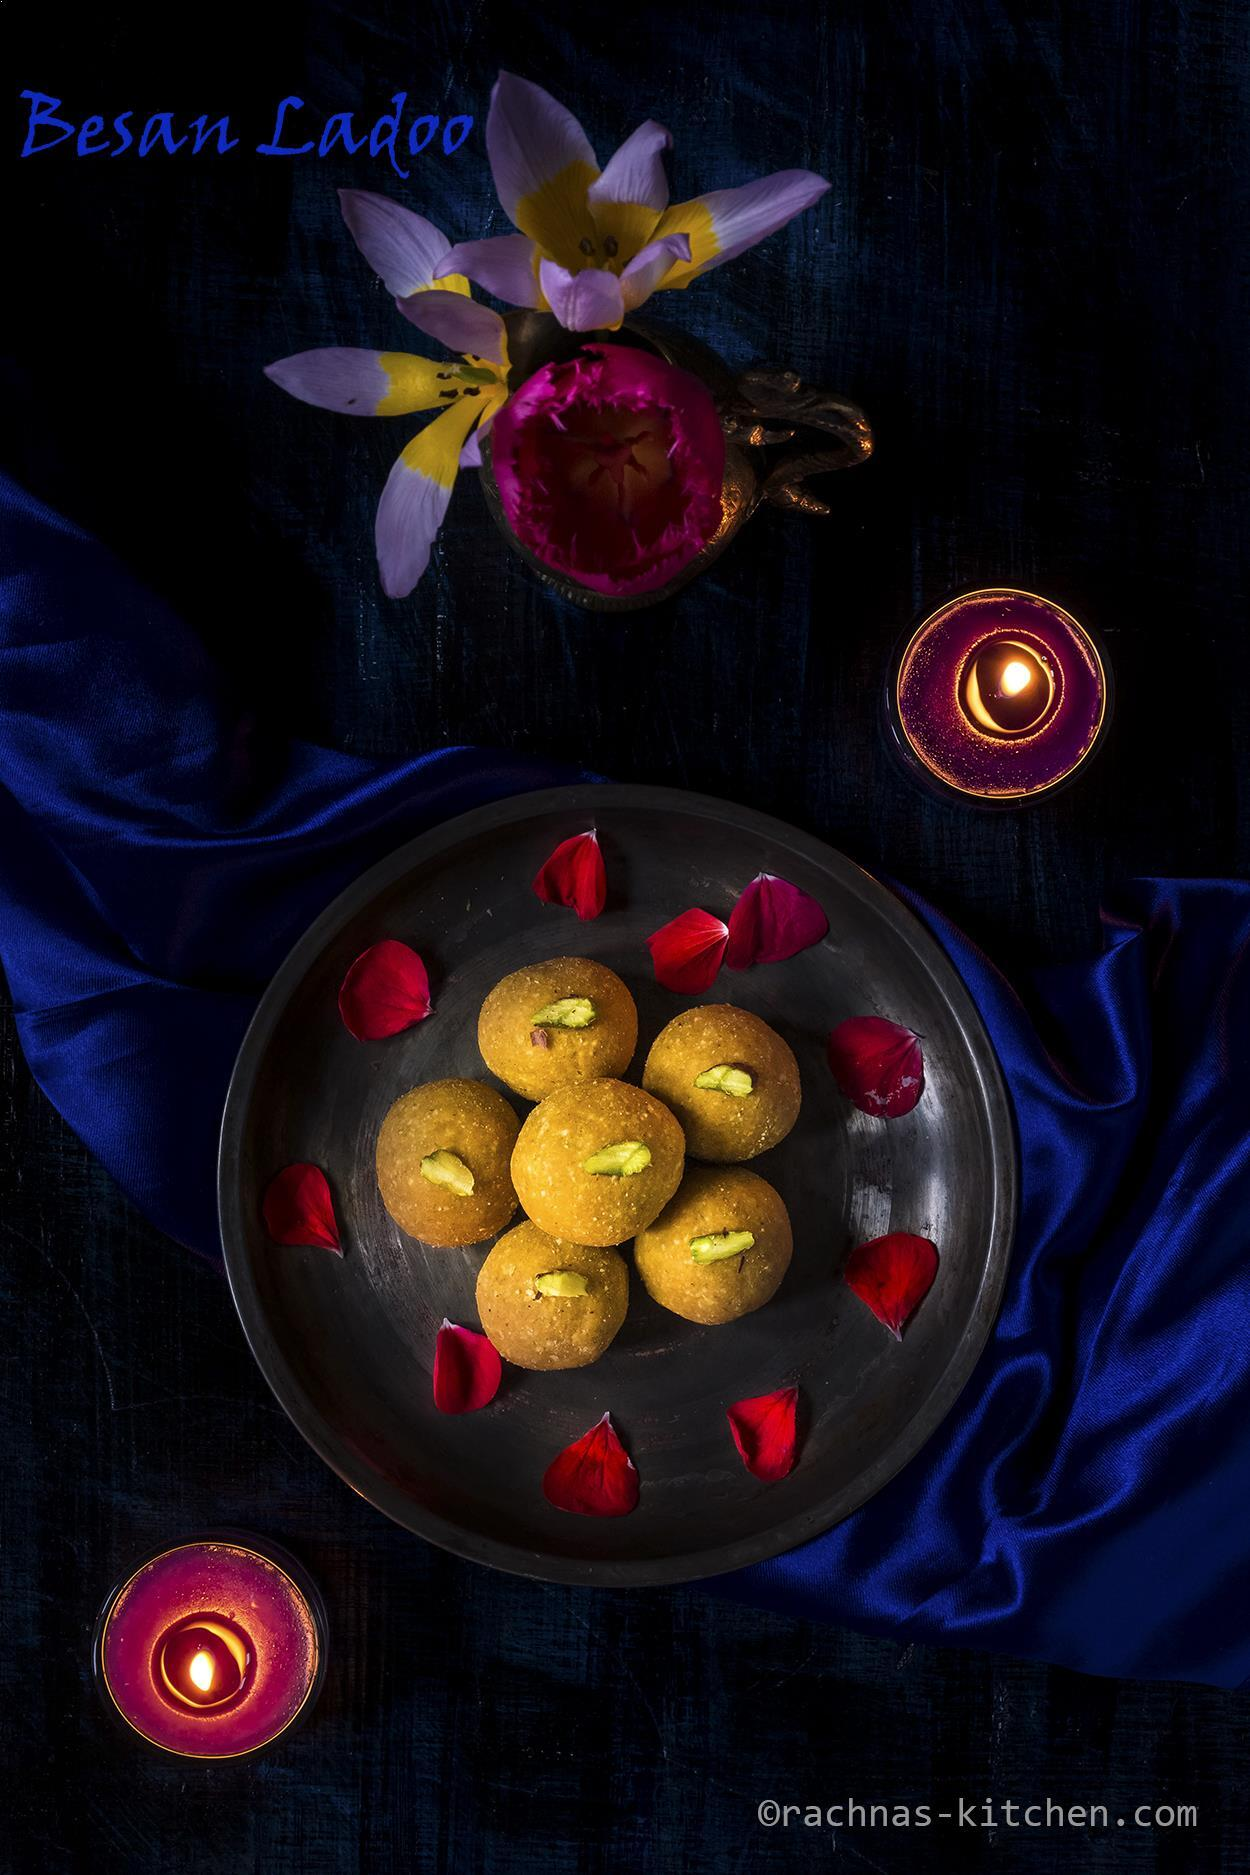 Besan Ladoo Recipe, How To Make Besan Ladoo